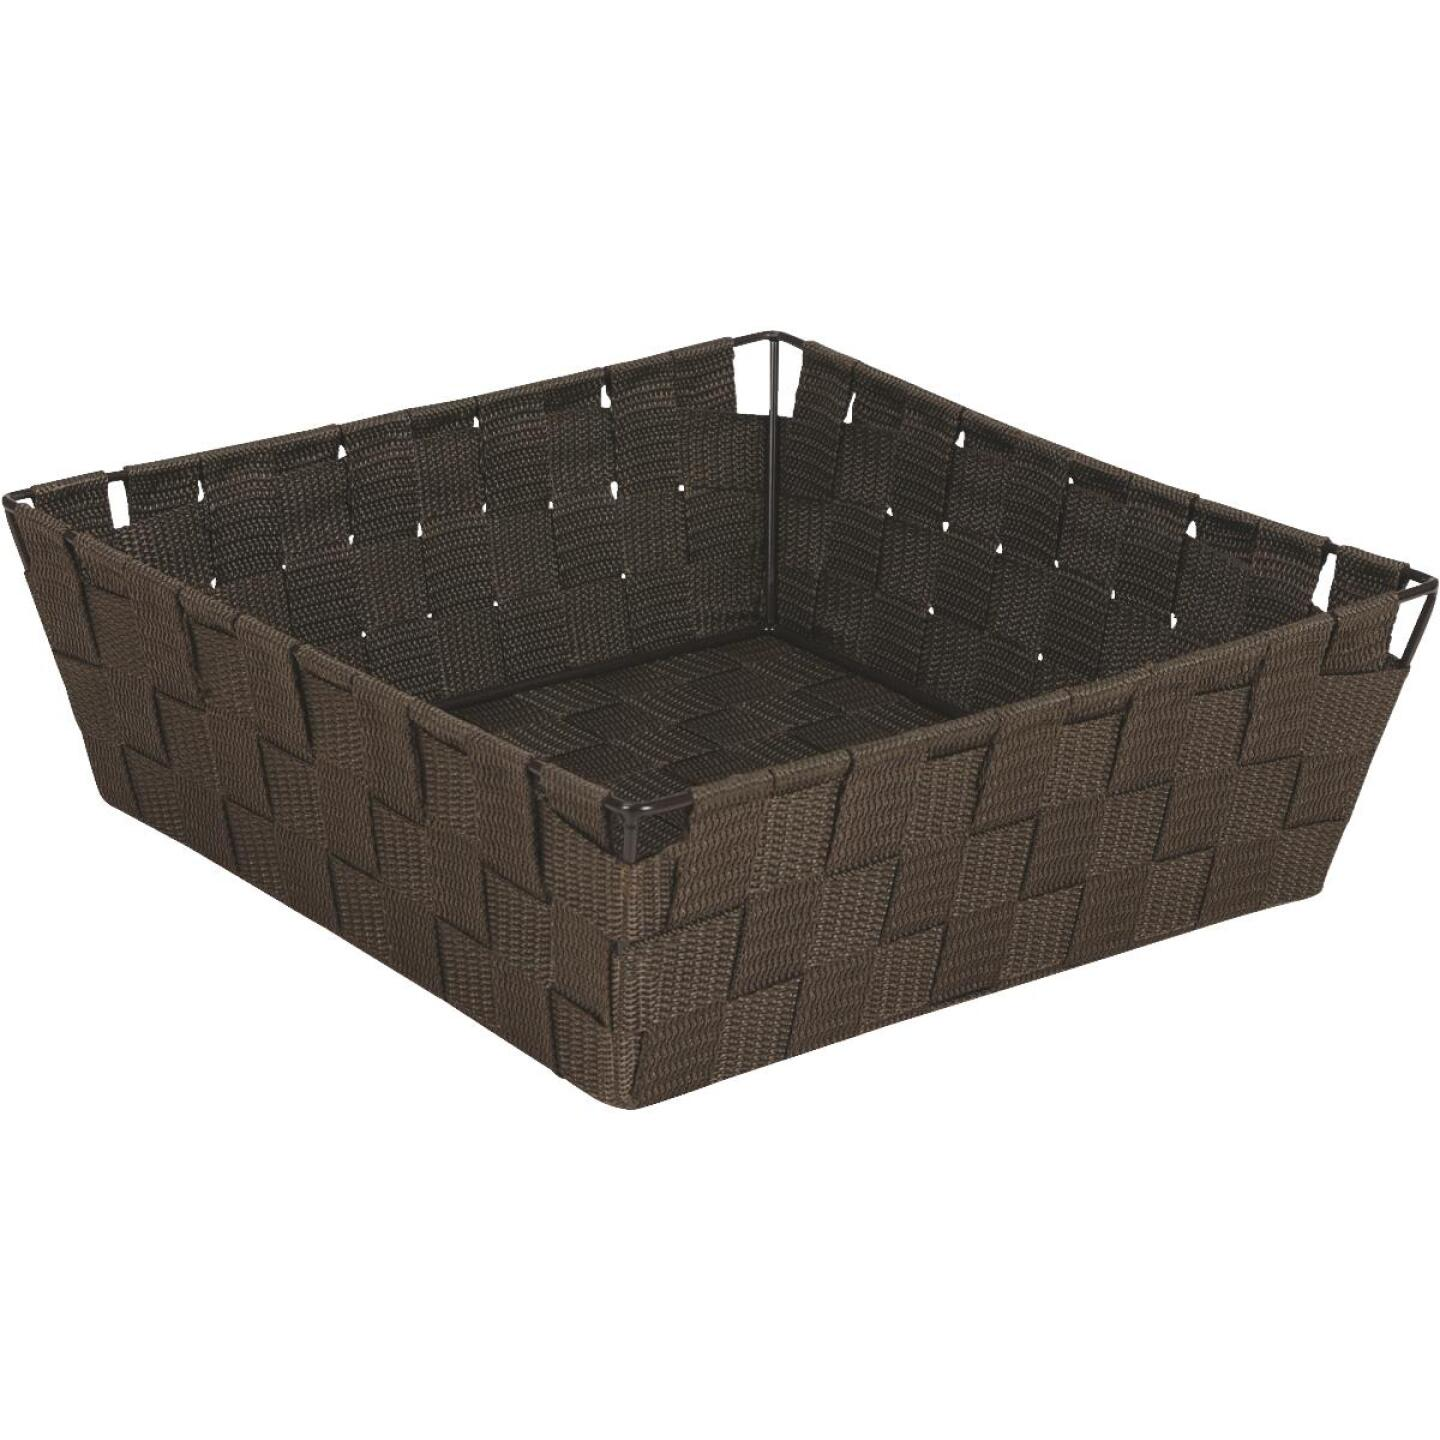 Home Impressions 11.75 In. x 3.75 In. H. Woven Storage Basket, Brown Image 1